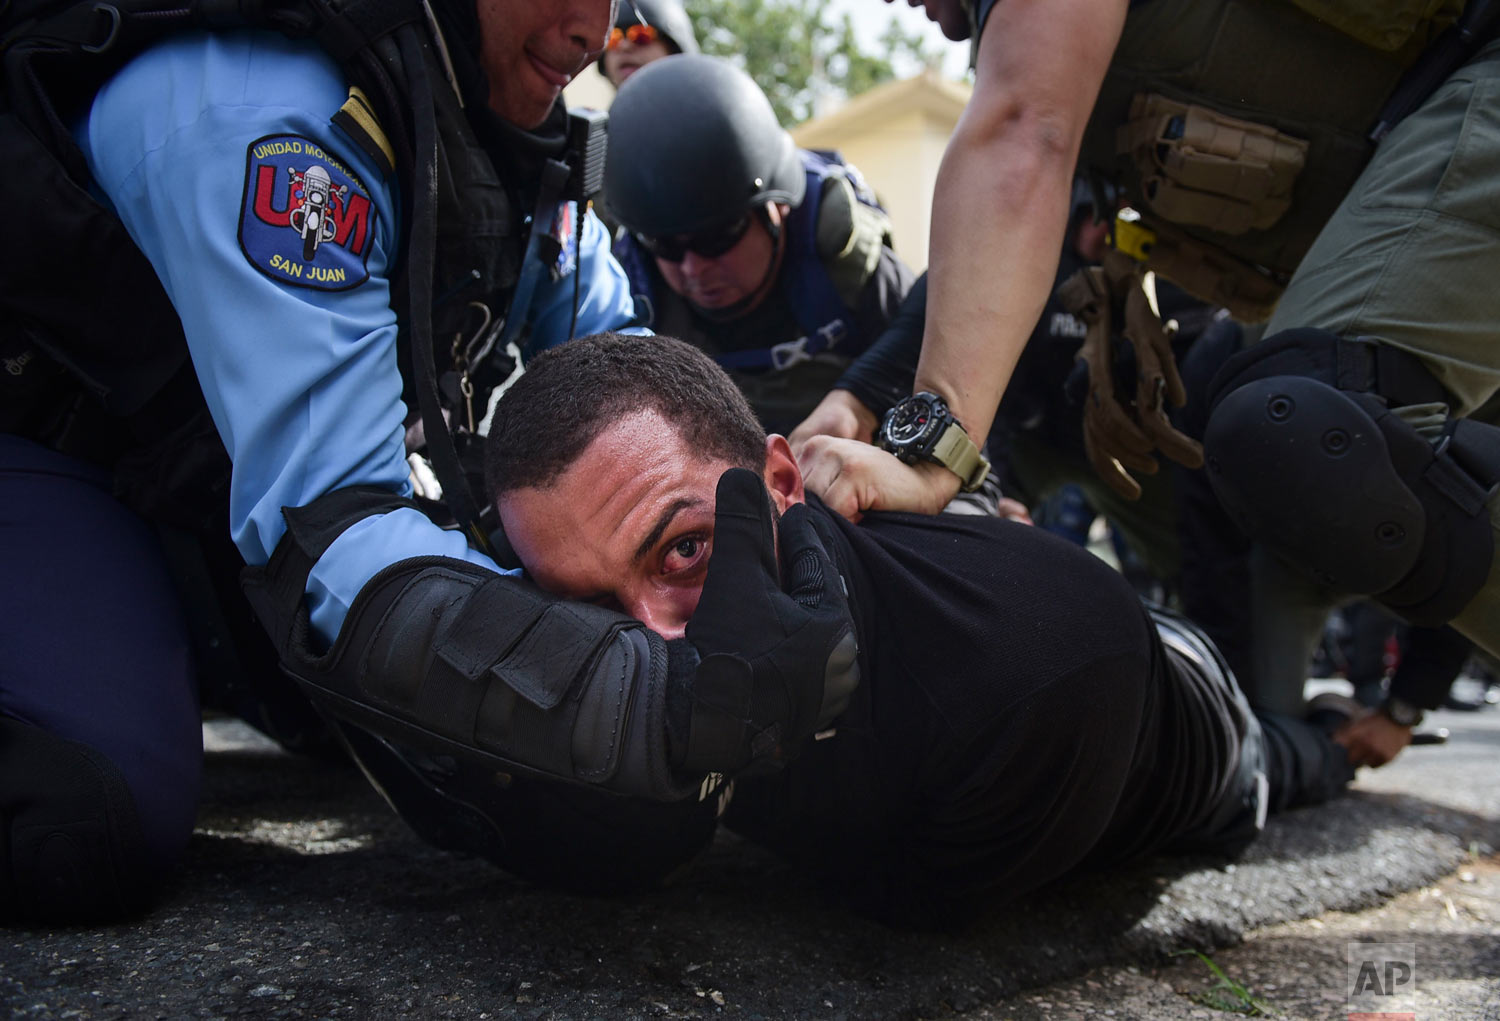 In this May 1, 2018 photo, police detain a protester after a May Day march where people protested pension cuts, school closures and slow hurricane recovery efforts in San Juan, Puerto Rico. Puerto Rico is struggling to emerge from a 12-year-old recession. (AP Photo/Carlos Giusti)